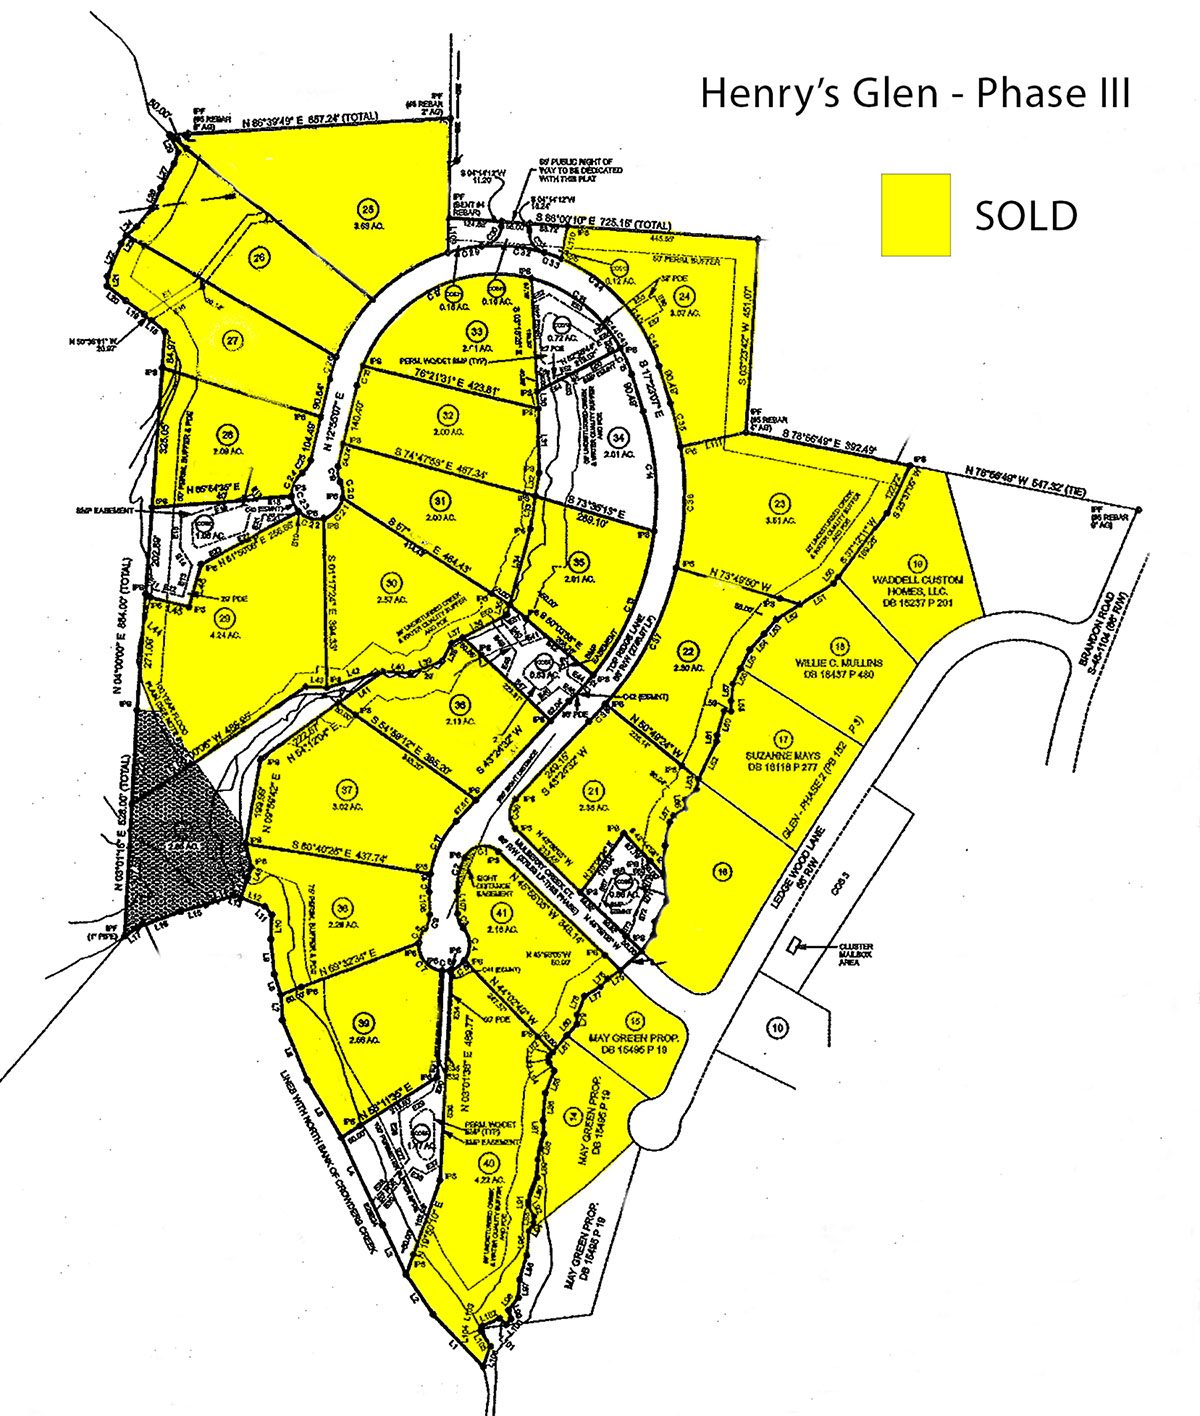 Henry's Glen Revised Recorded Phase 3 plat sold